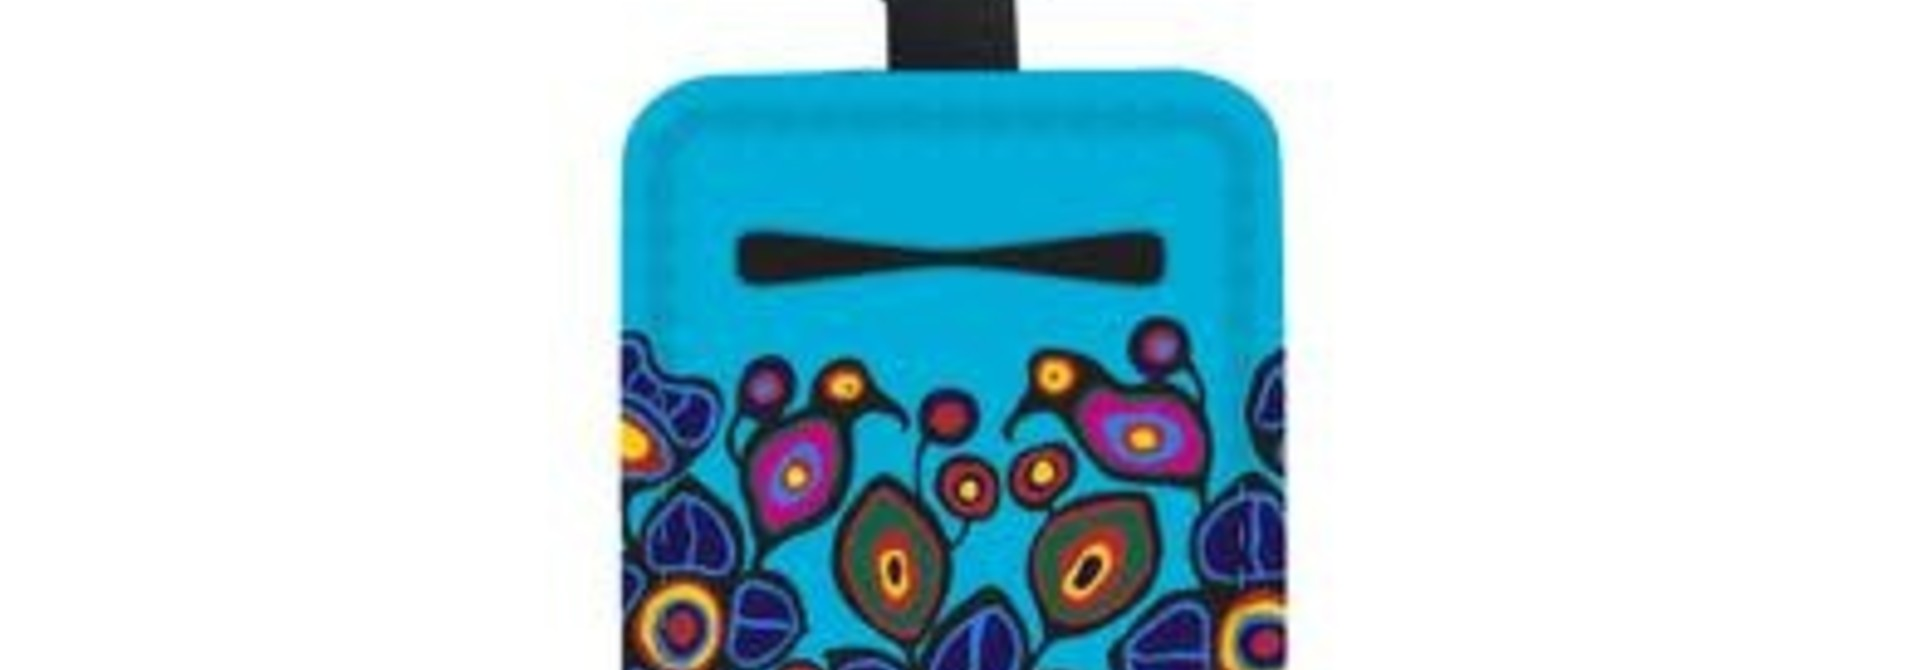 Sanitizer Bottle Holder- Birds & Flowers by Norval Morrisseau